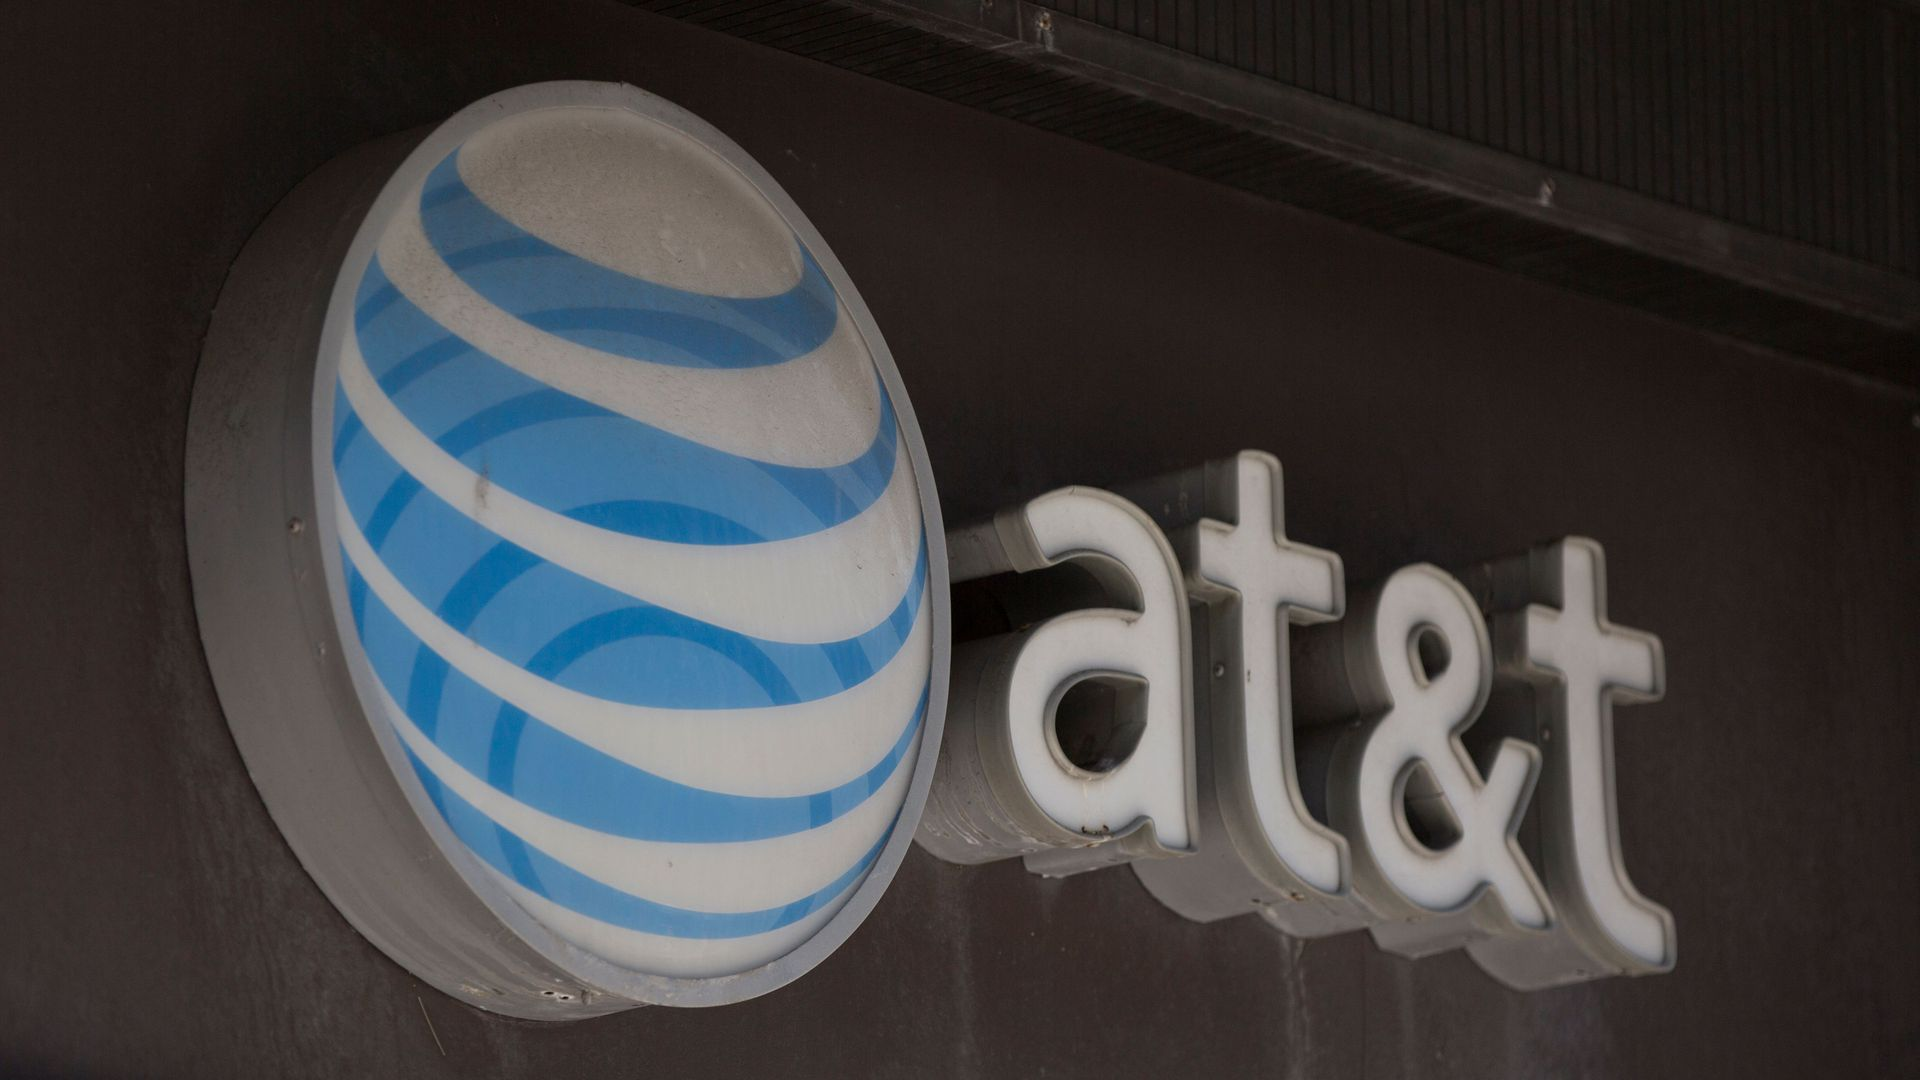 A photo of AT&T's logo and next to the company's name.